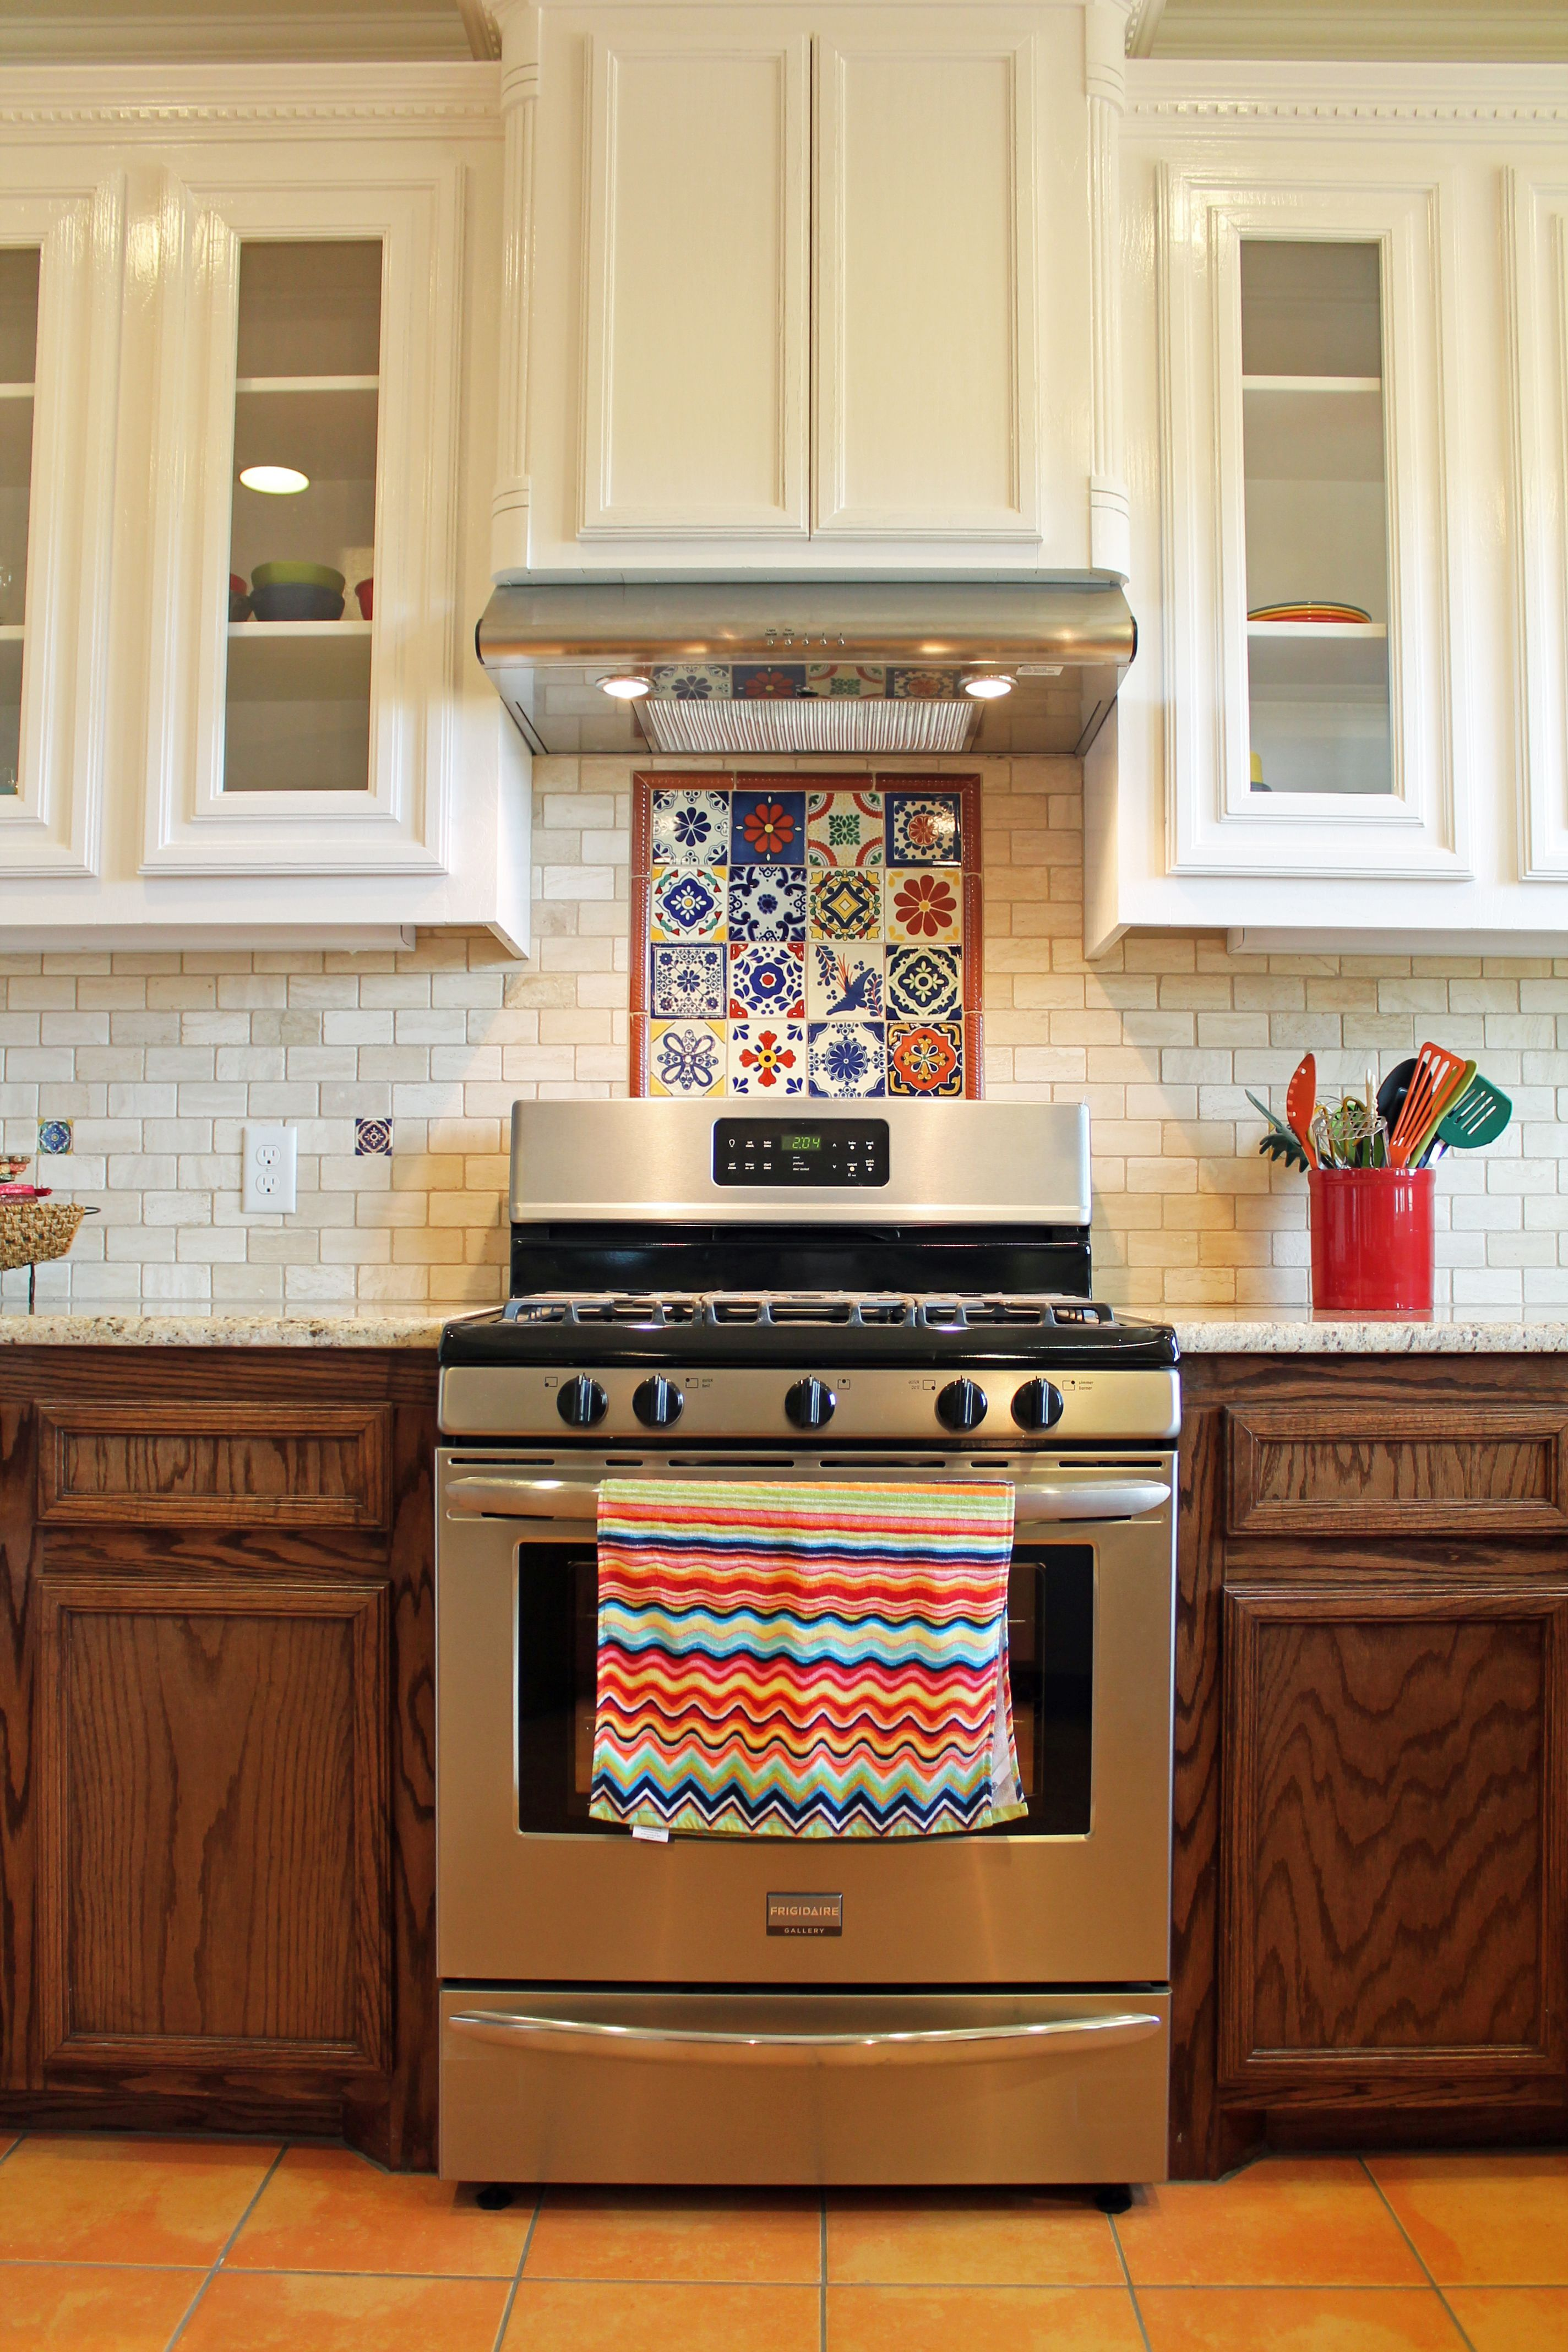 Best Kitchen Gallery: Spanish Style Kitchen Design With Saltillo Tile Floors And of Kitchen Cabinets Made In Mexico on rachelxblog.com